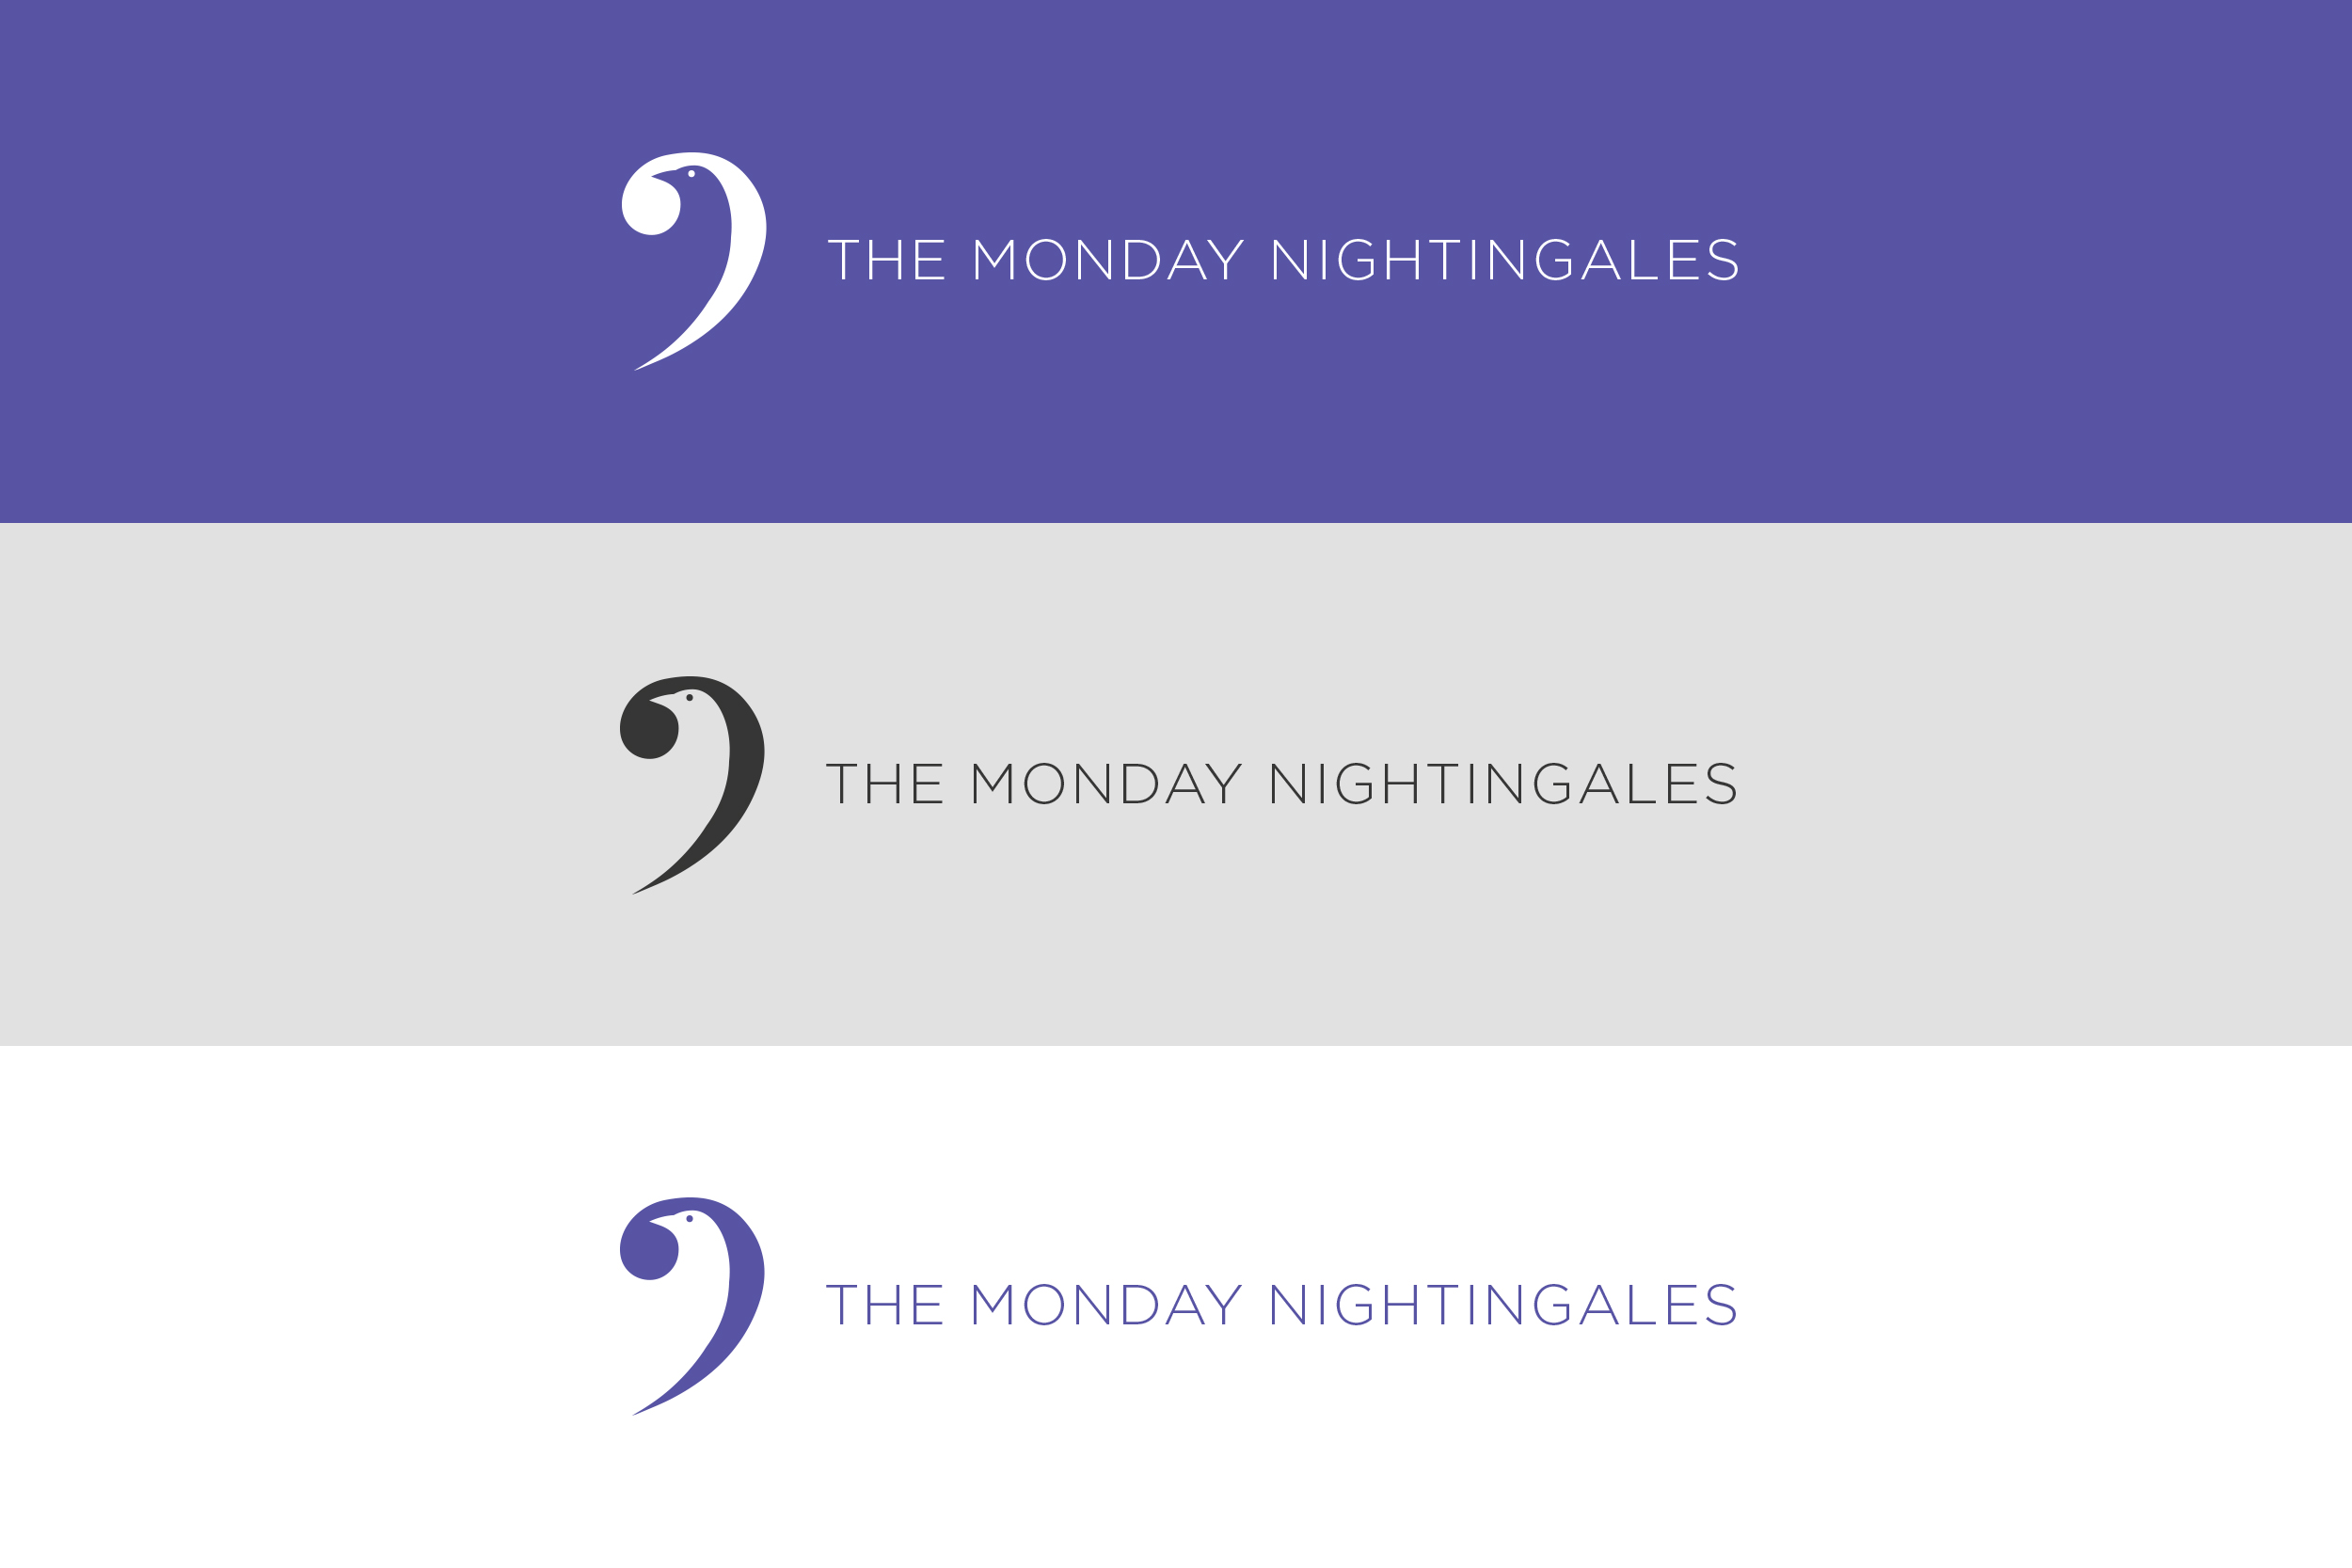 Nightingales-mockup-working-2500x1667-02.jpg